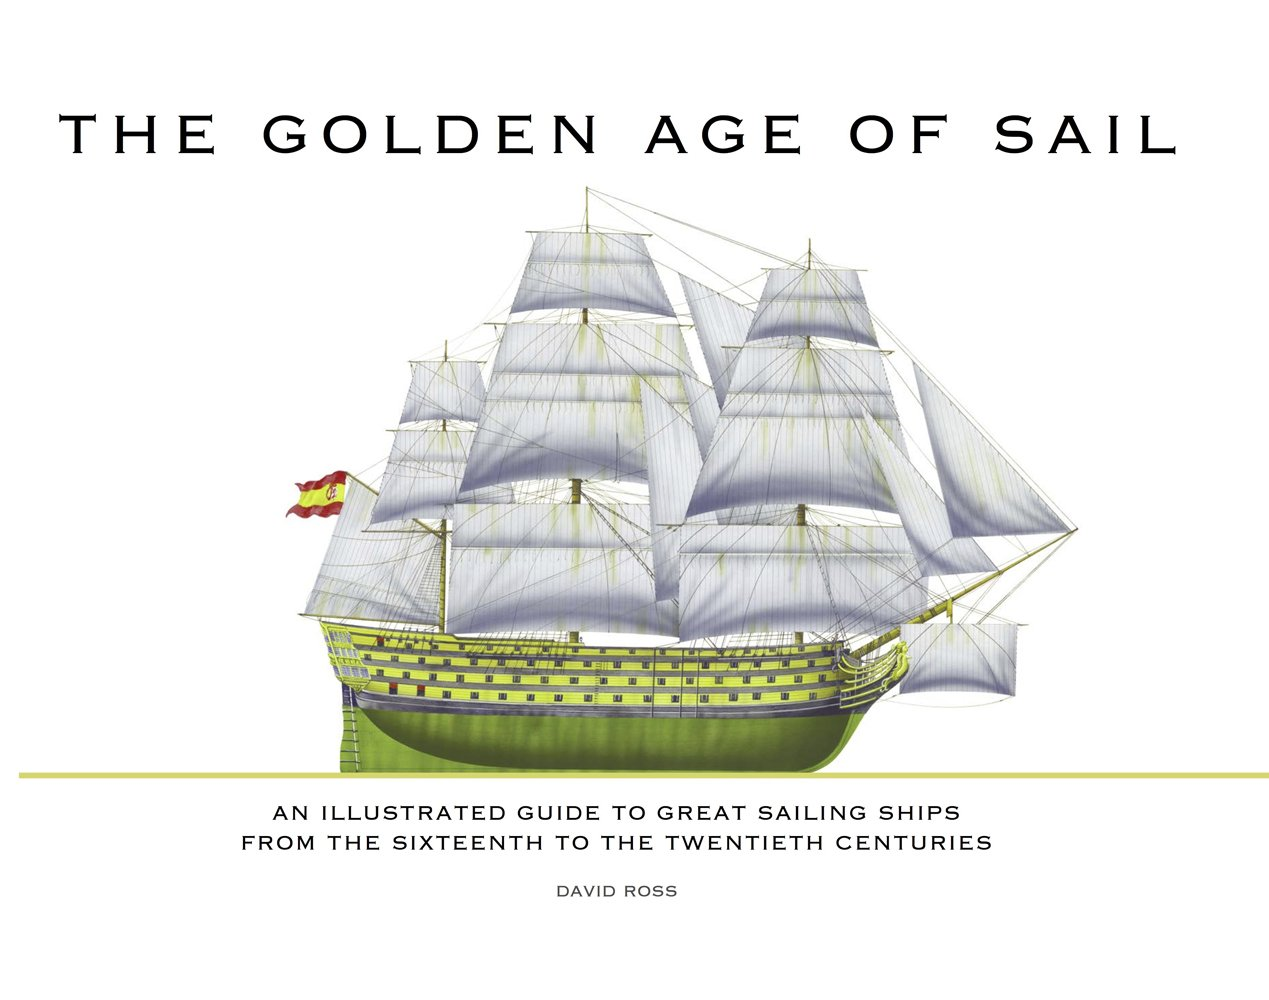 The Golden Age of Sail: An Illustrated Guide to Great